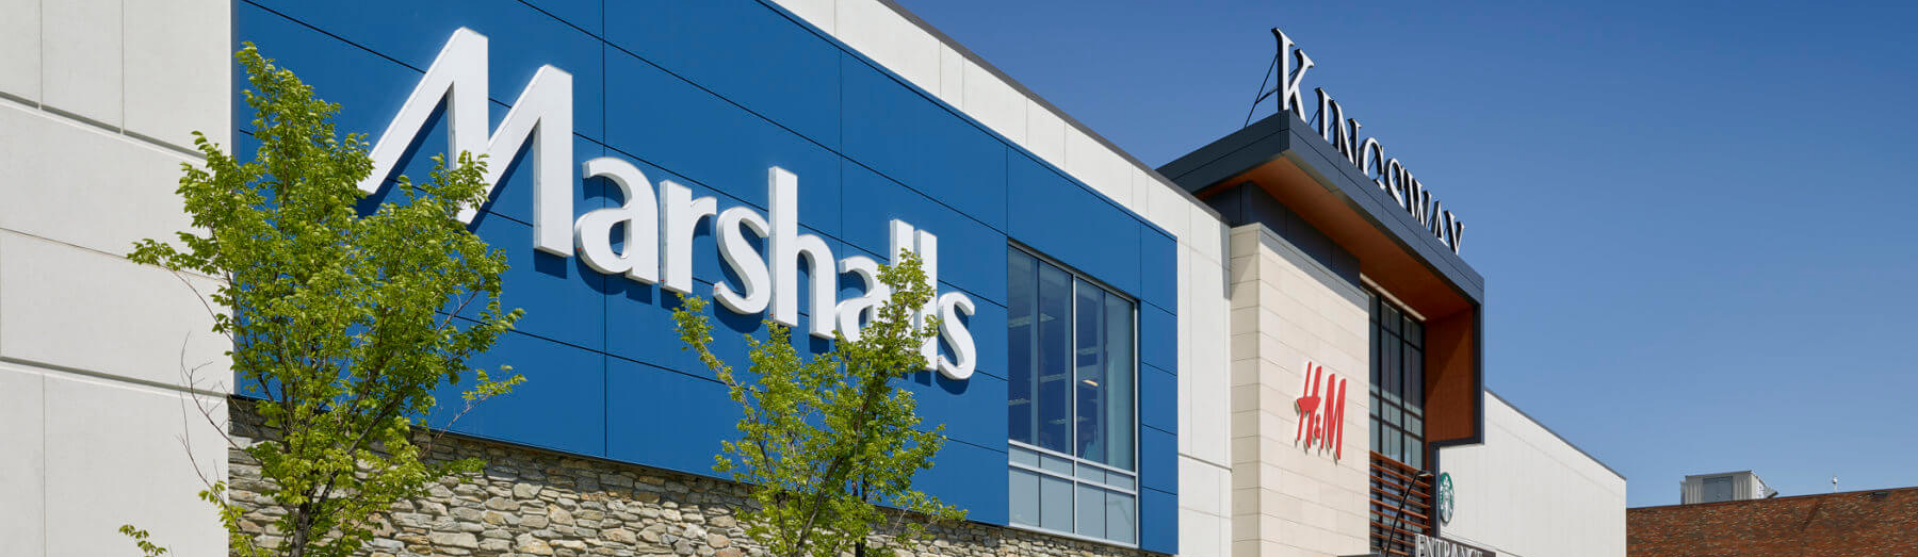 Exterior shot of Kingsway showing Marshall's and H&M